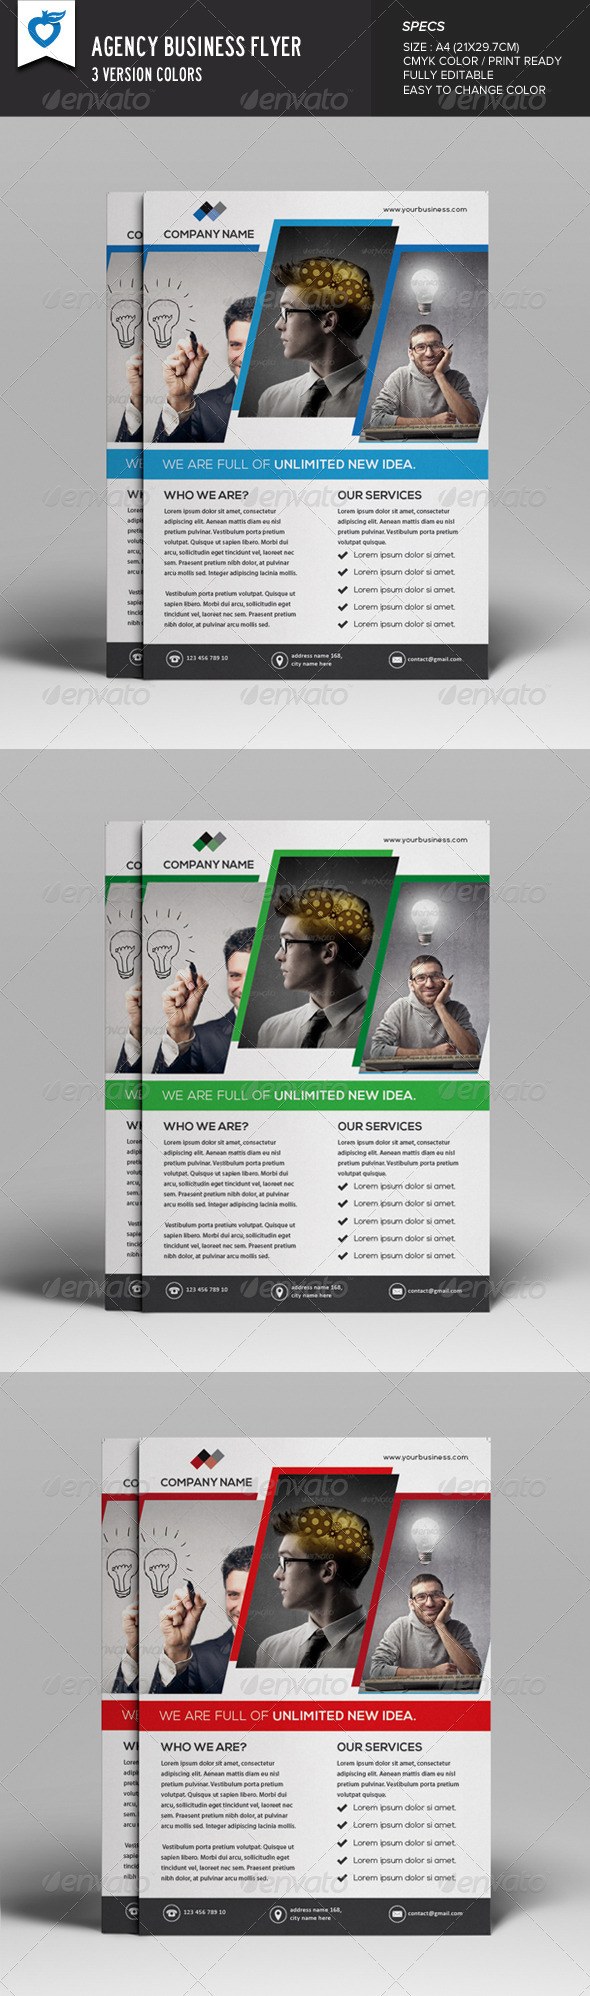 GraphicRiver Agency Business Flyer 8189201